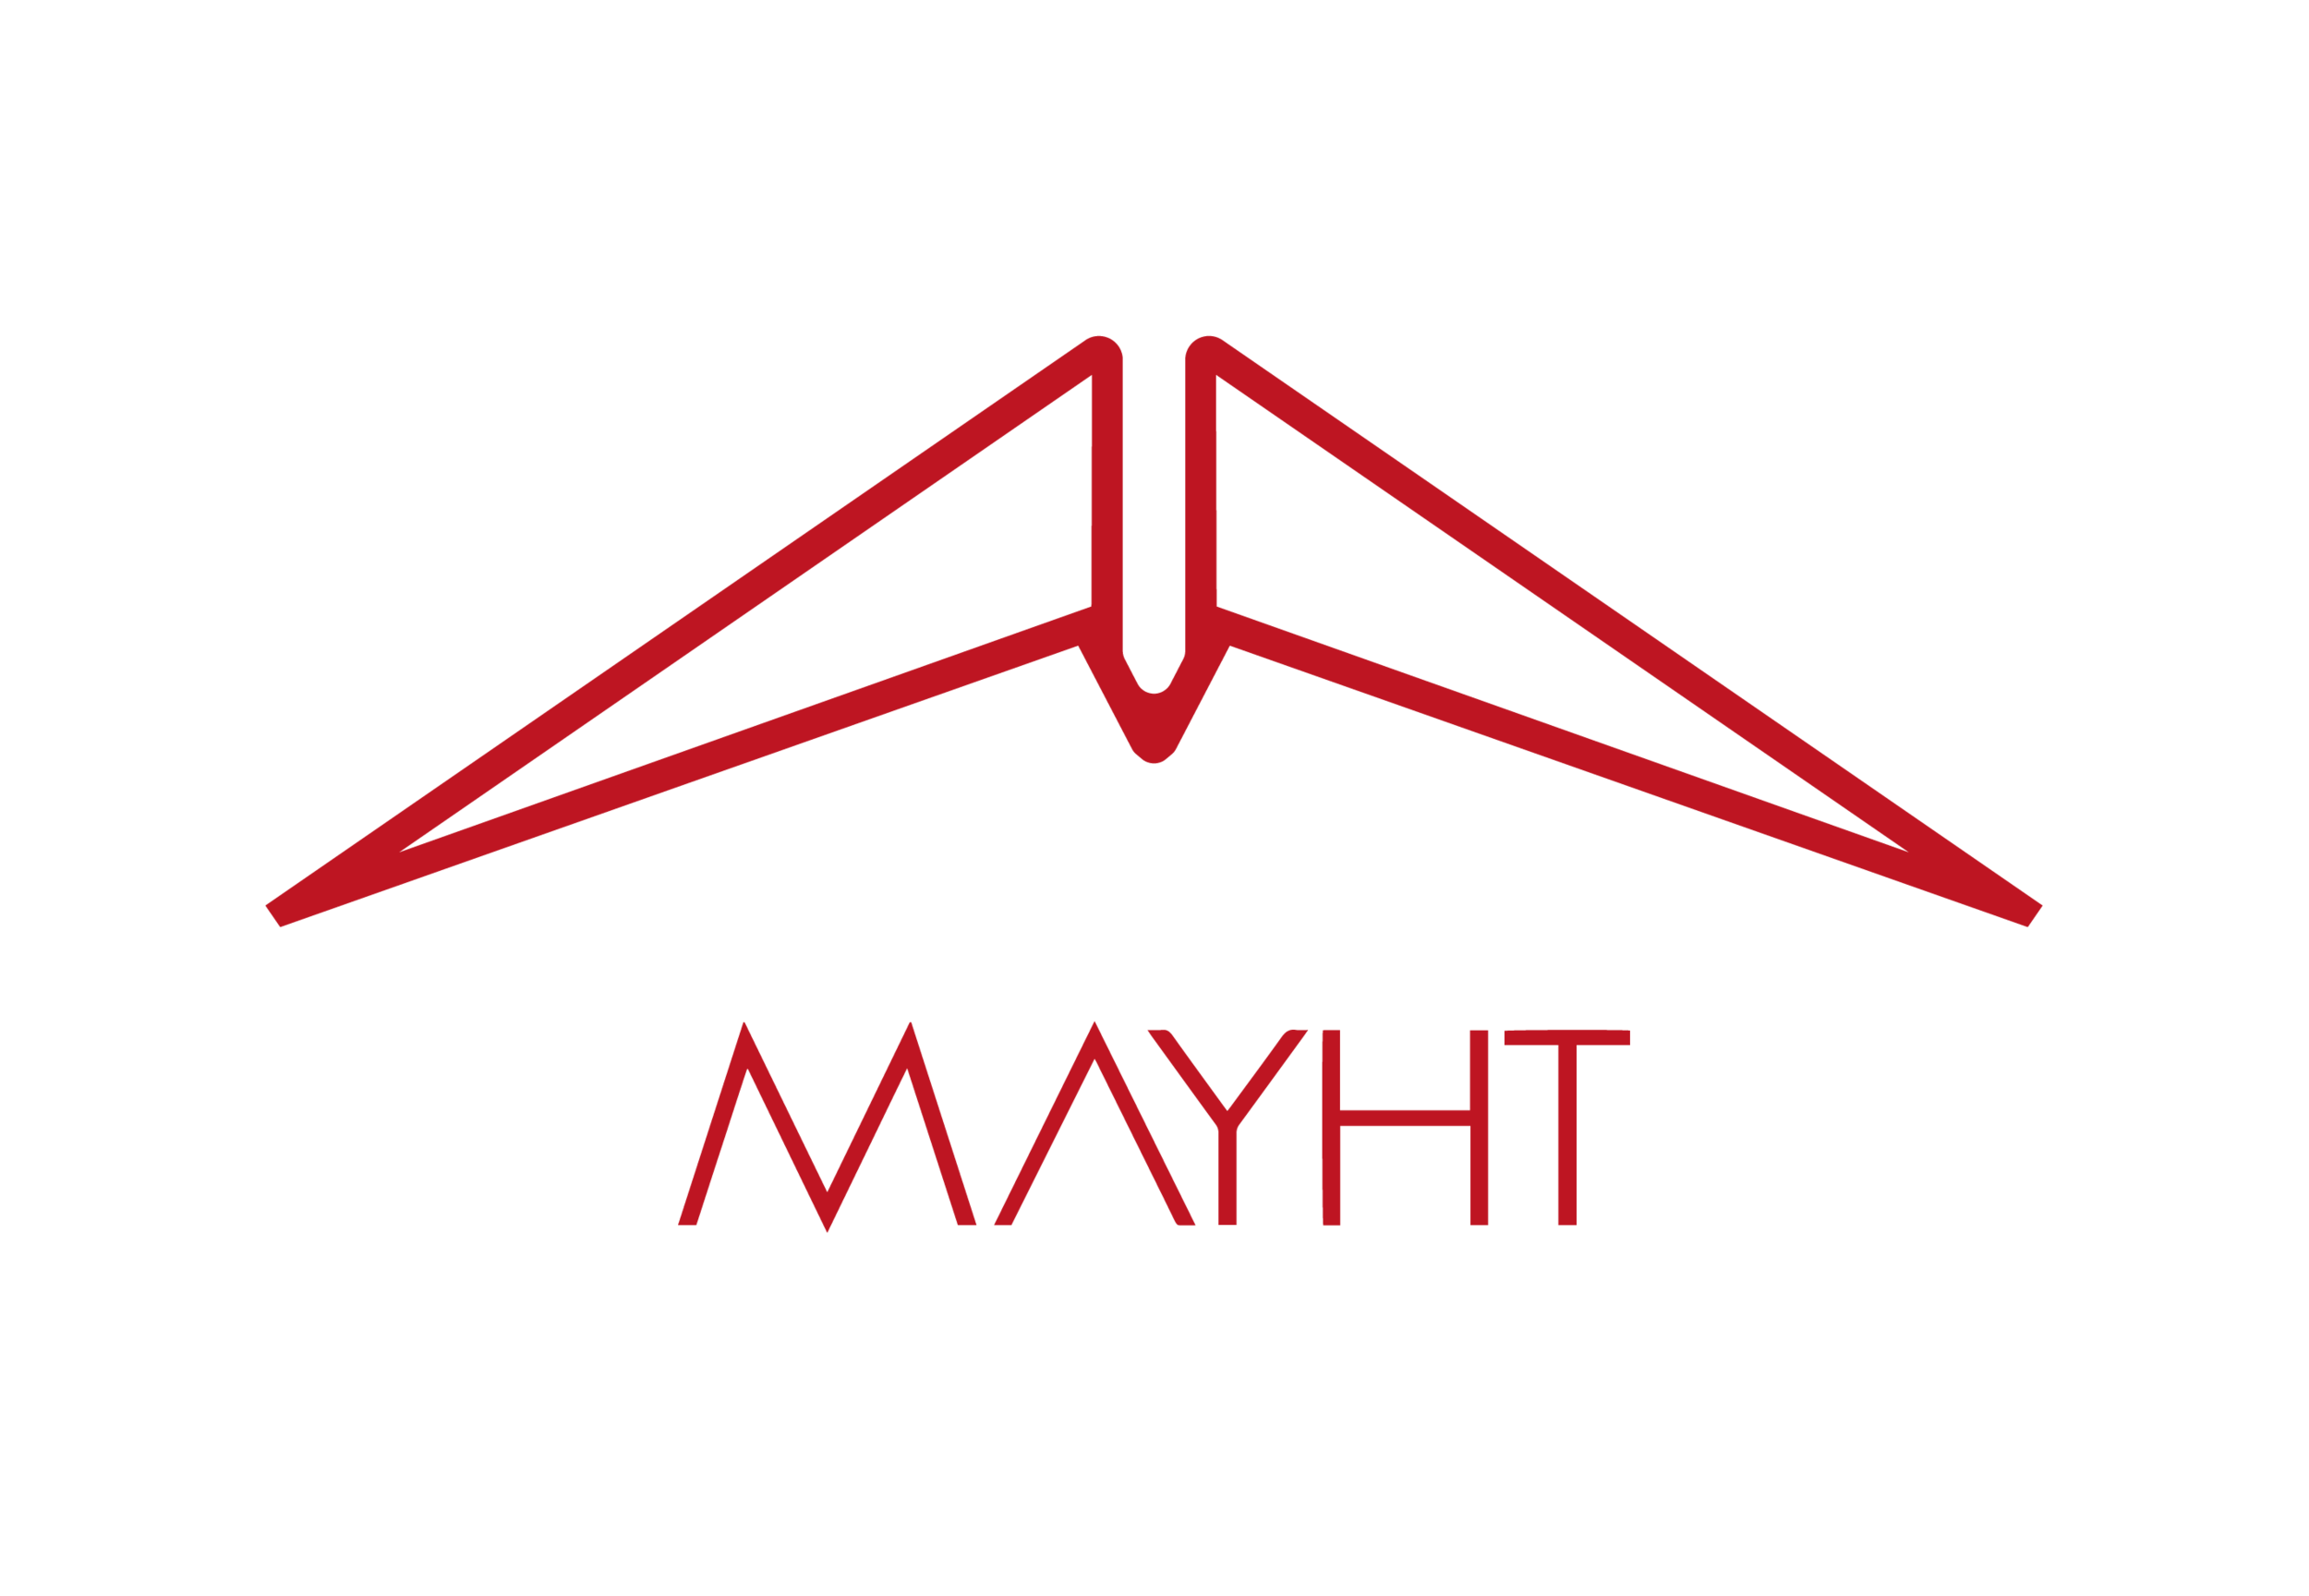 RED Logo-MAYHT-withtext.png